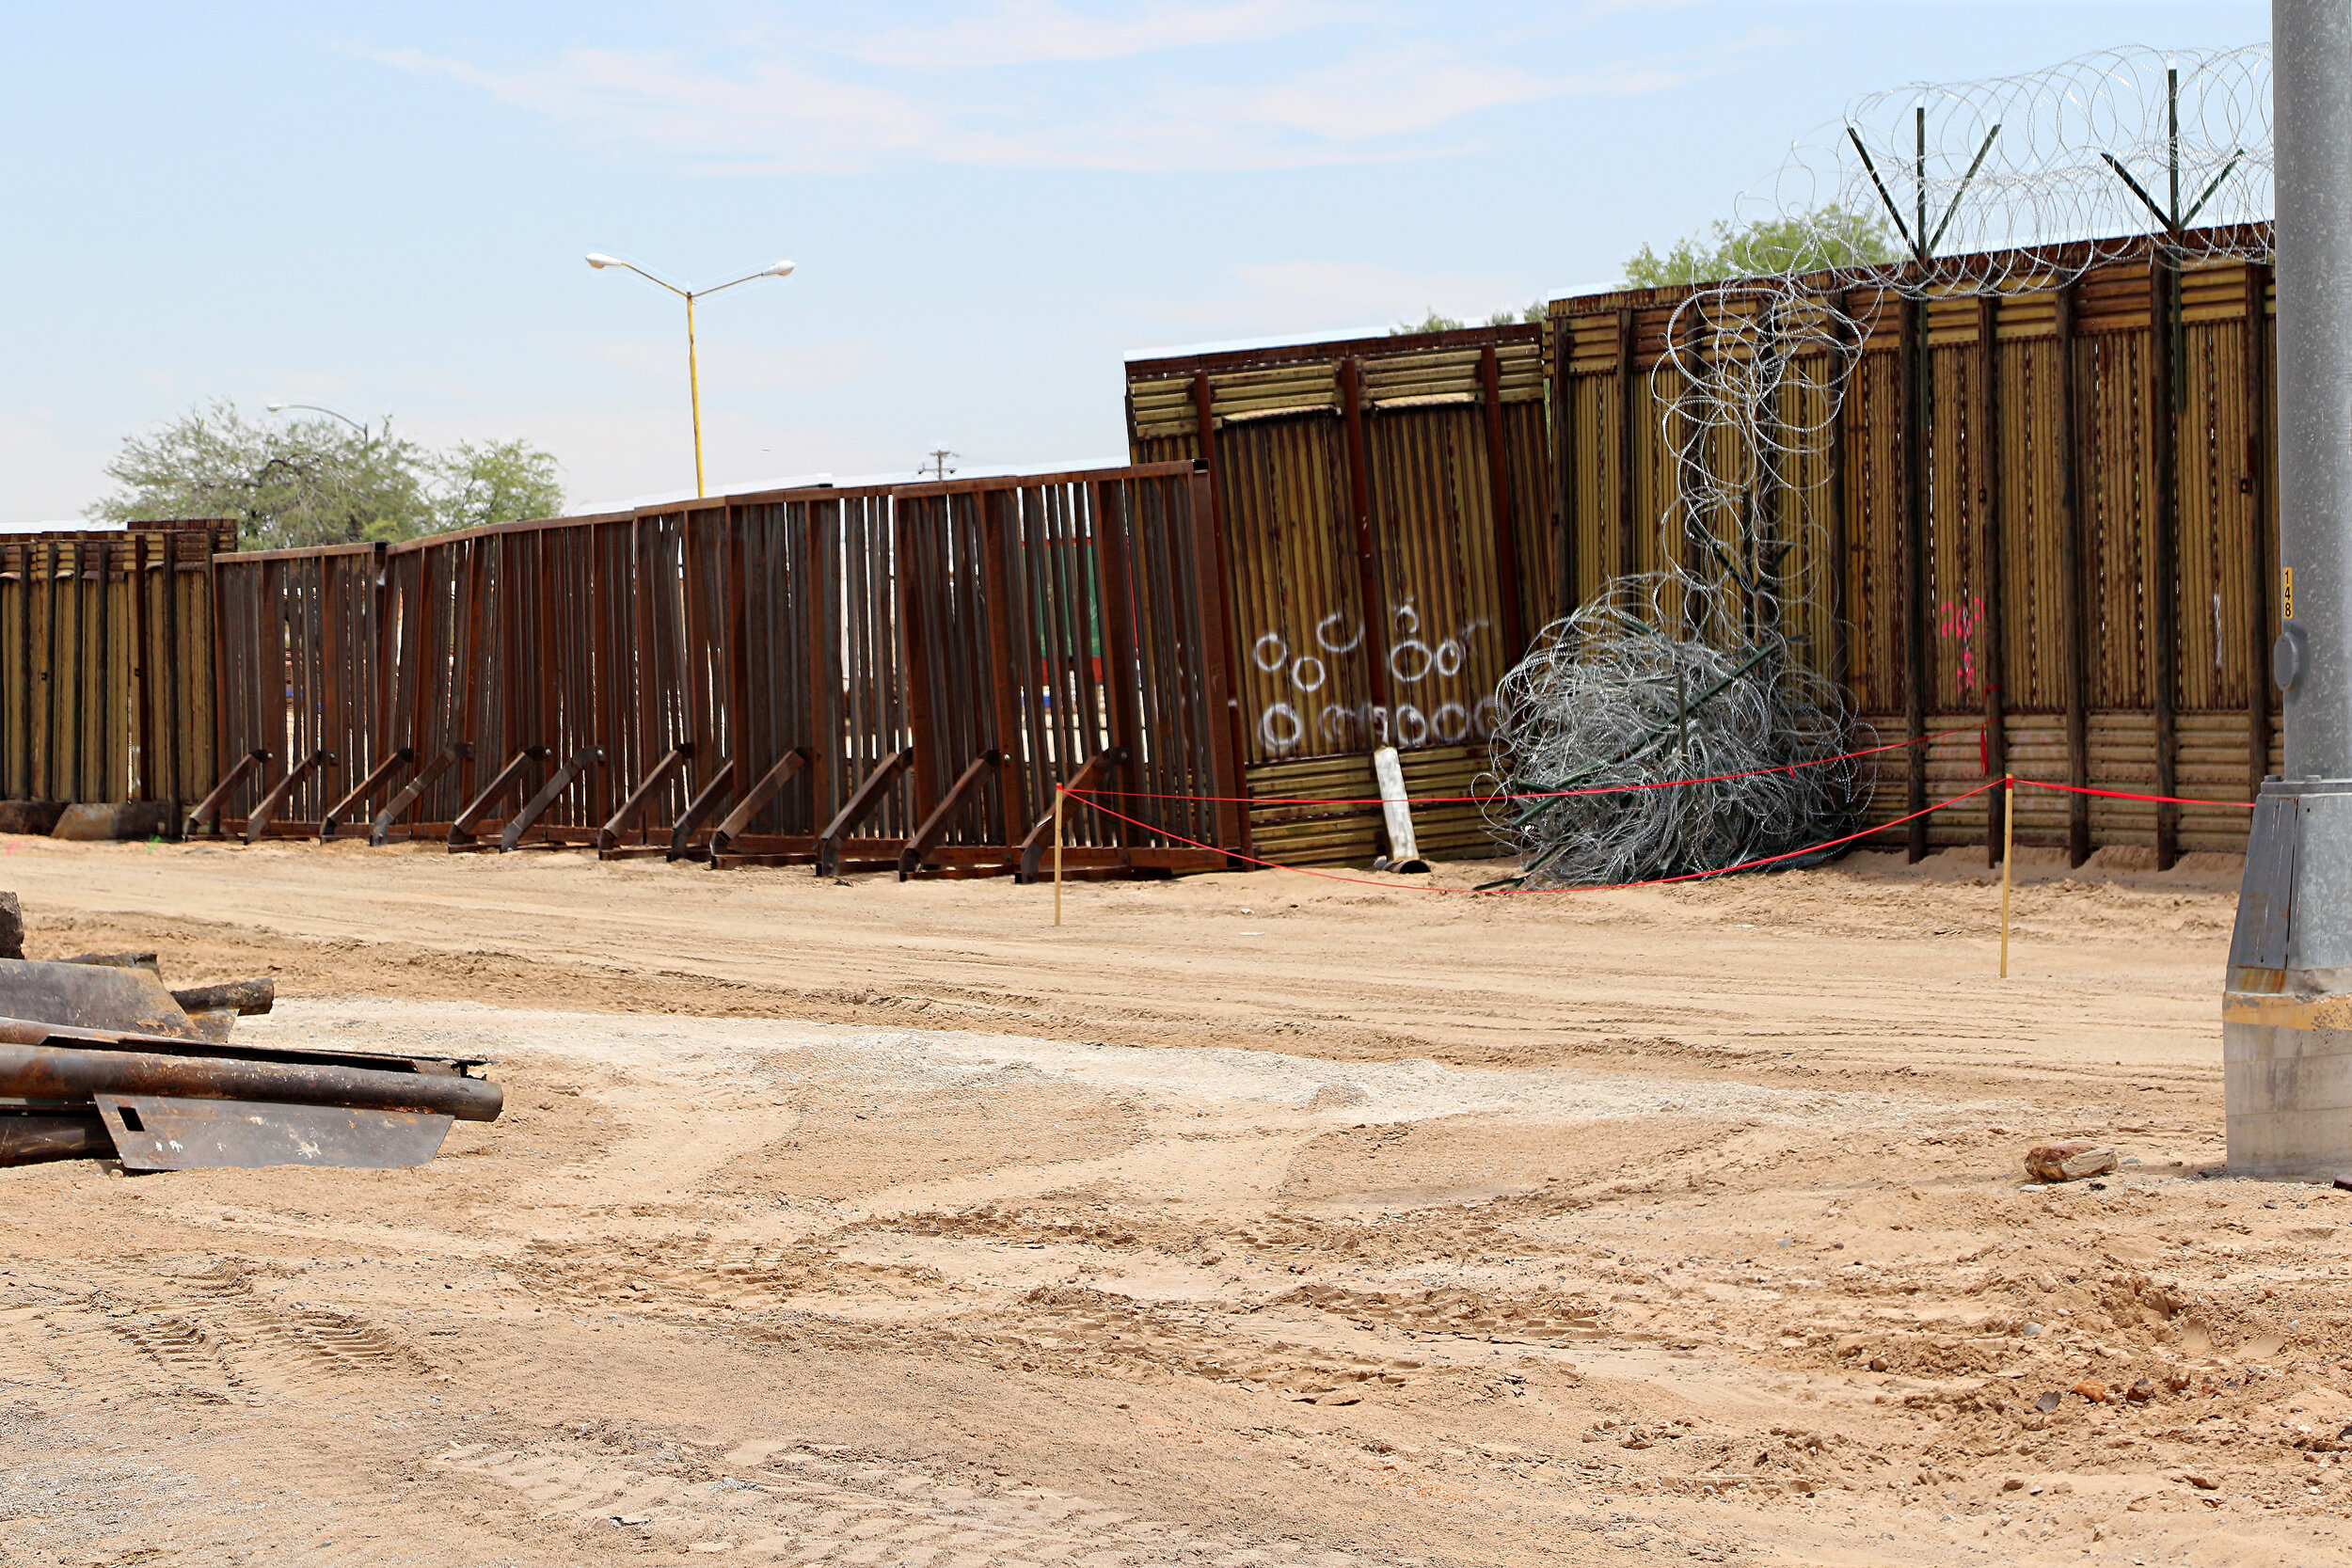 An example of the old Pedestrian fencing before the construction of Trump's wall in the Yuma sector